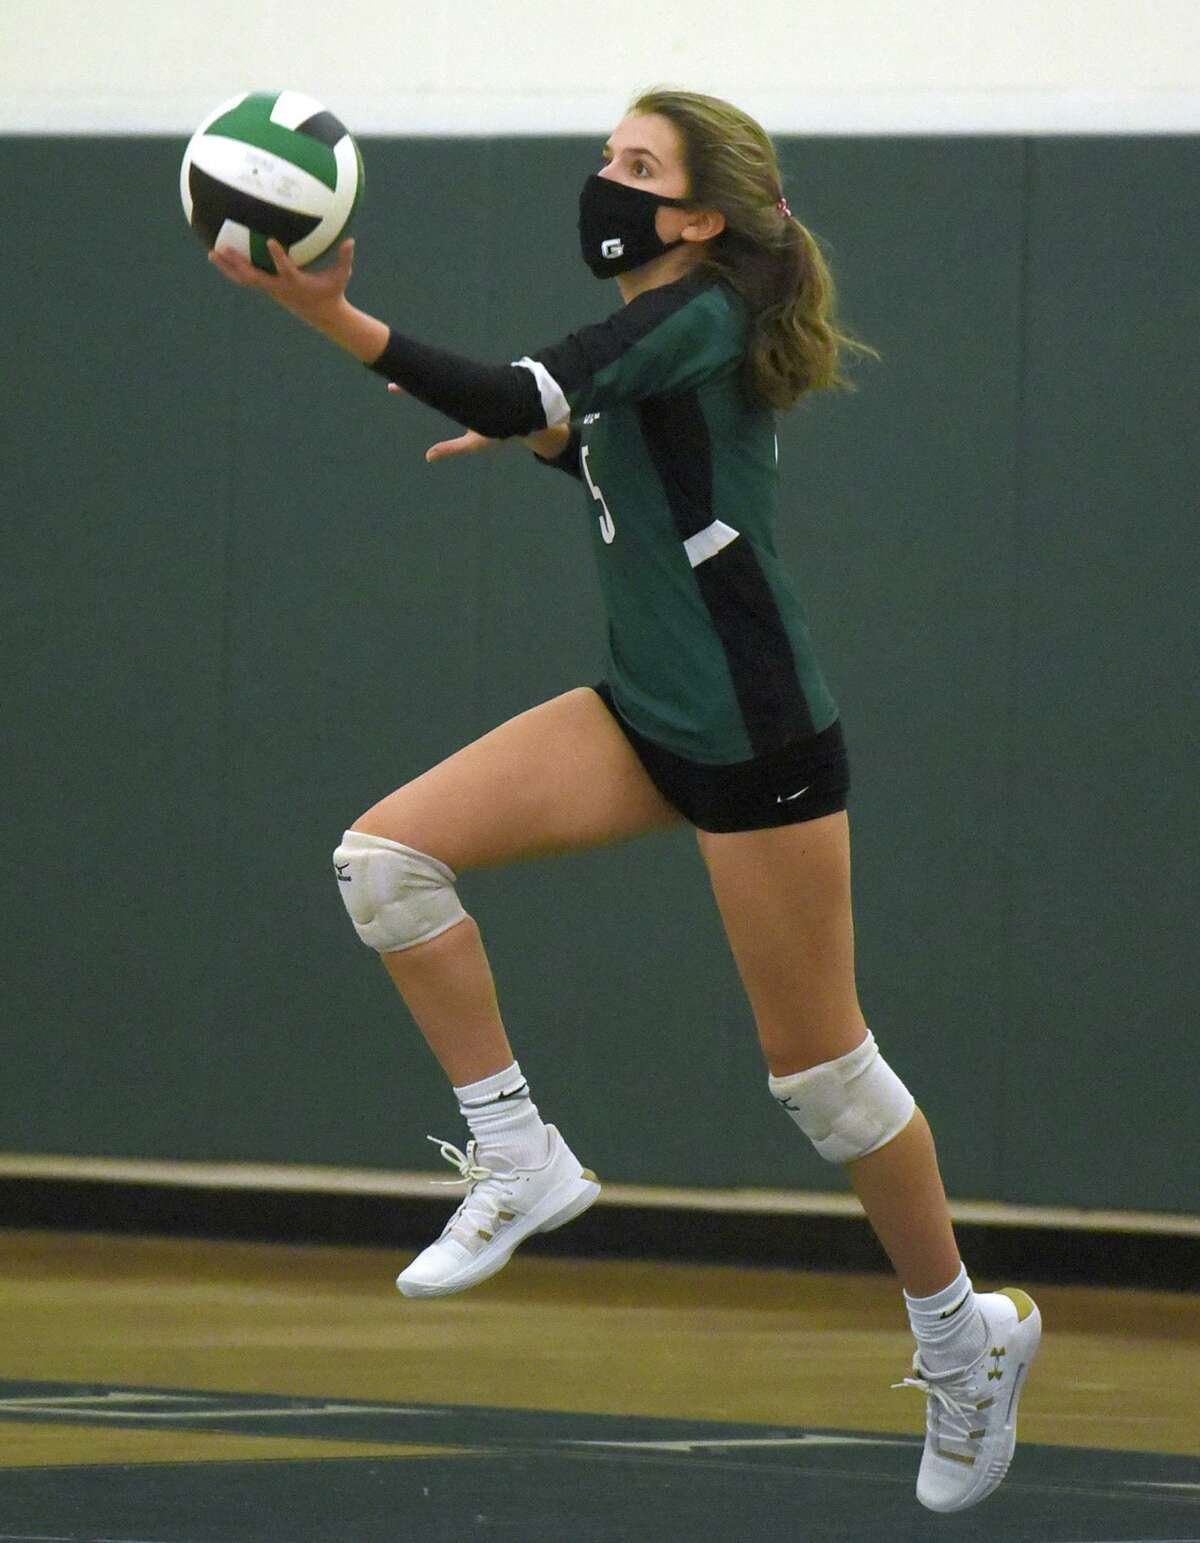 Guilford's Halle Krause serves against East Haven during the SCC Div. C volleyball final in Guilford on Nov. 13.